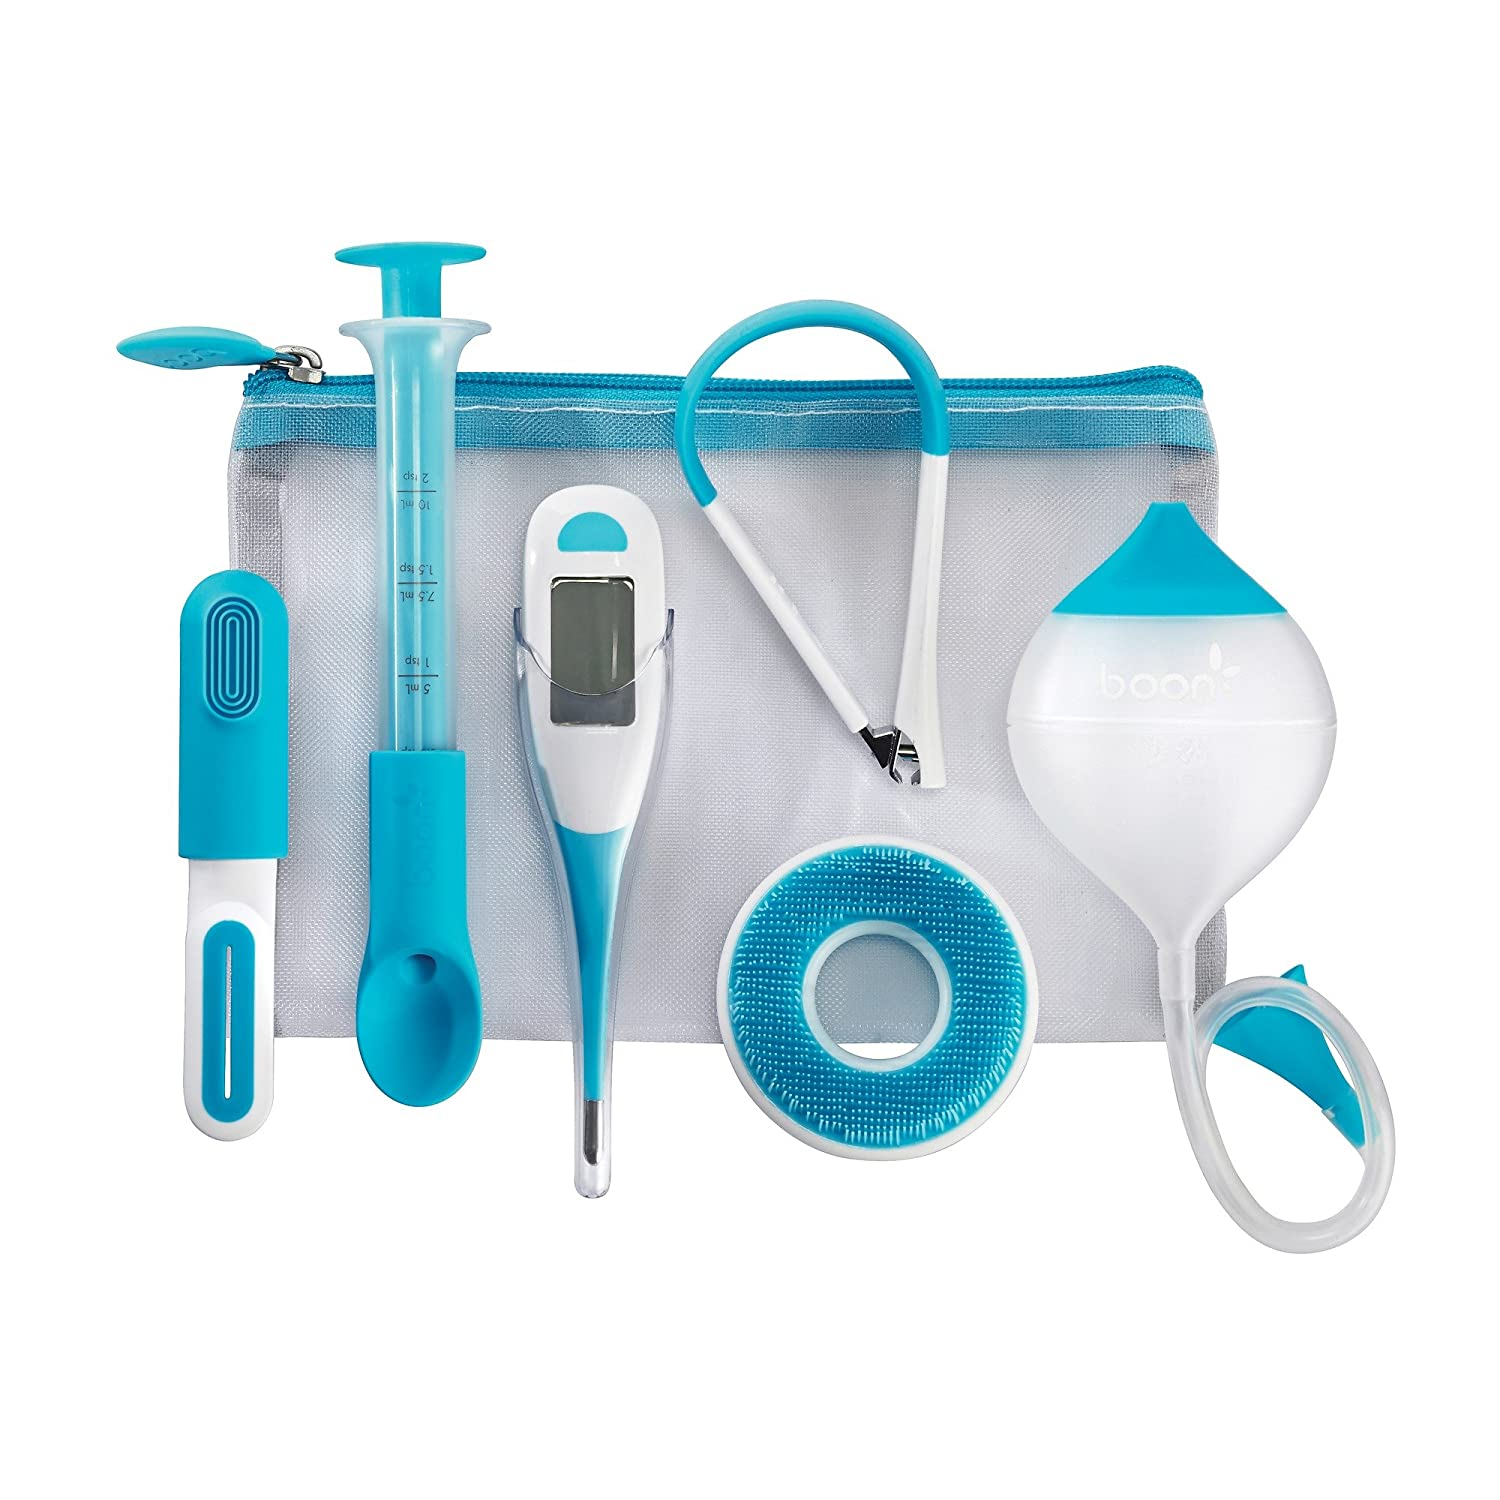 Boon Boon Care Health and Grooming Kit for Babies, Blue & White